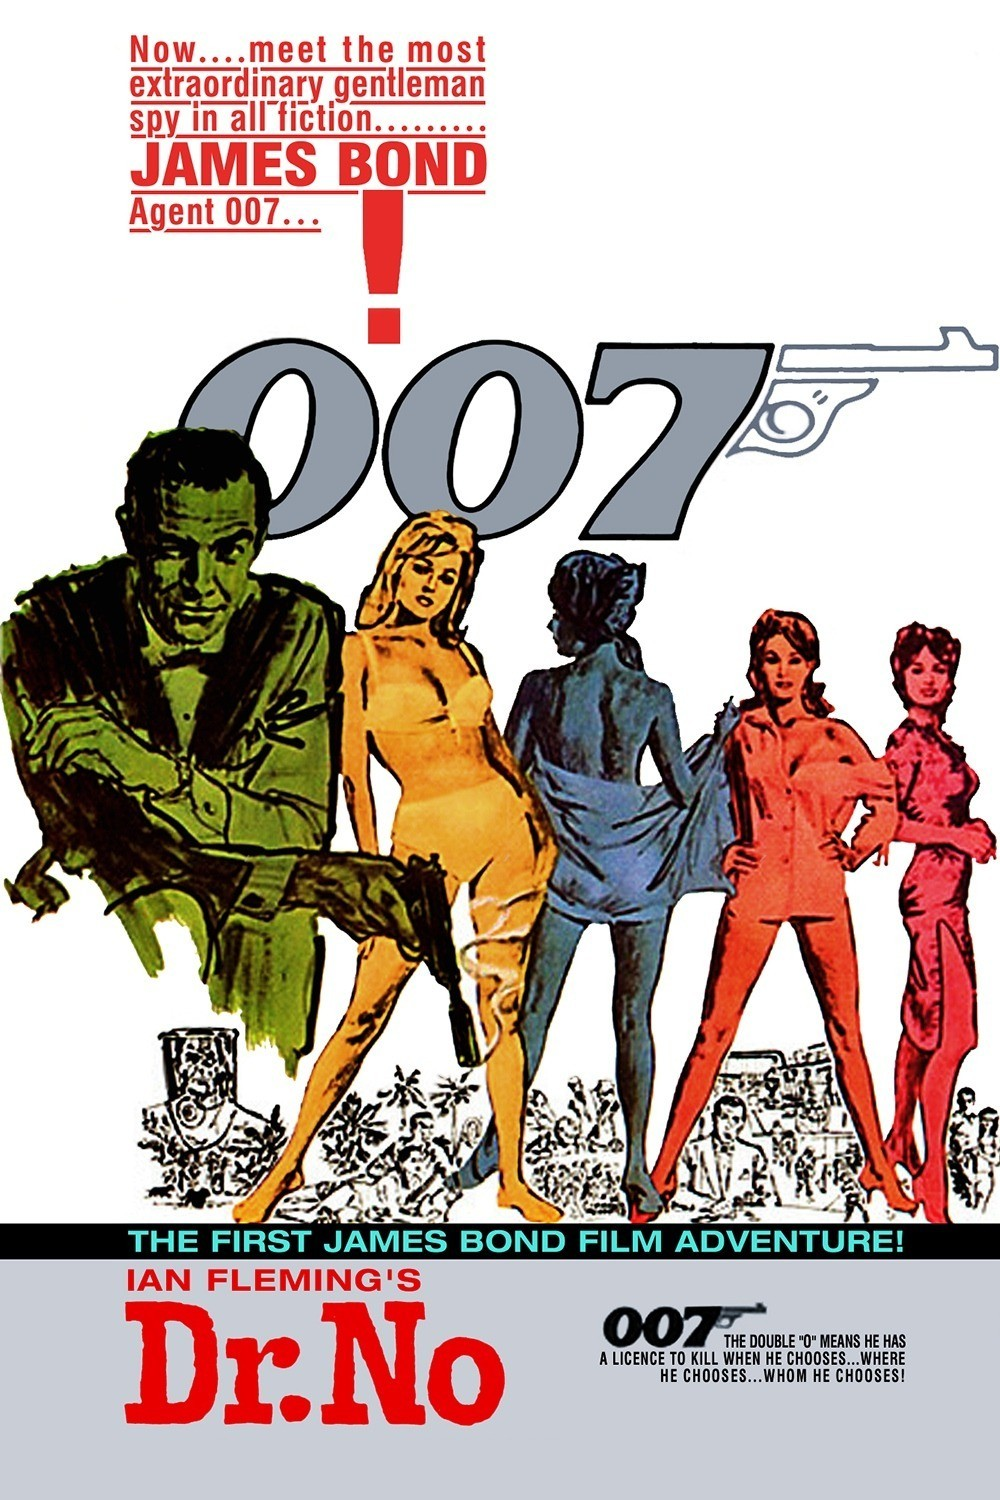 free shipping1962 dr no 007poster hd home wall decor